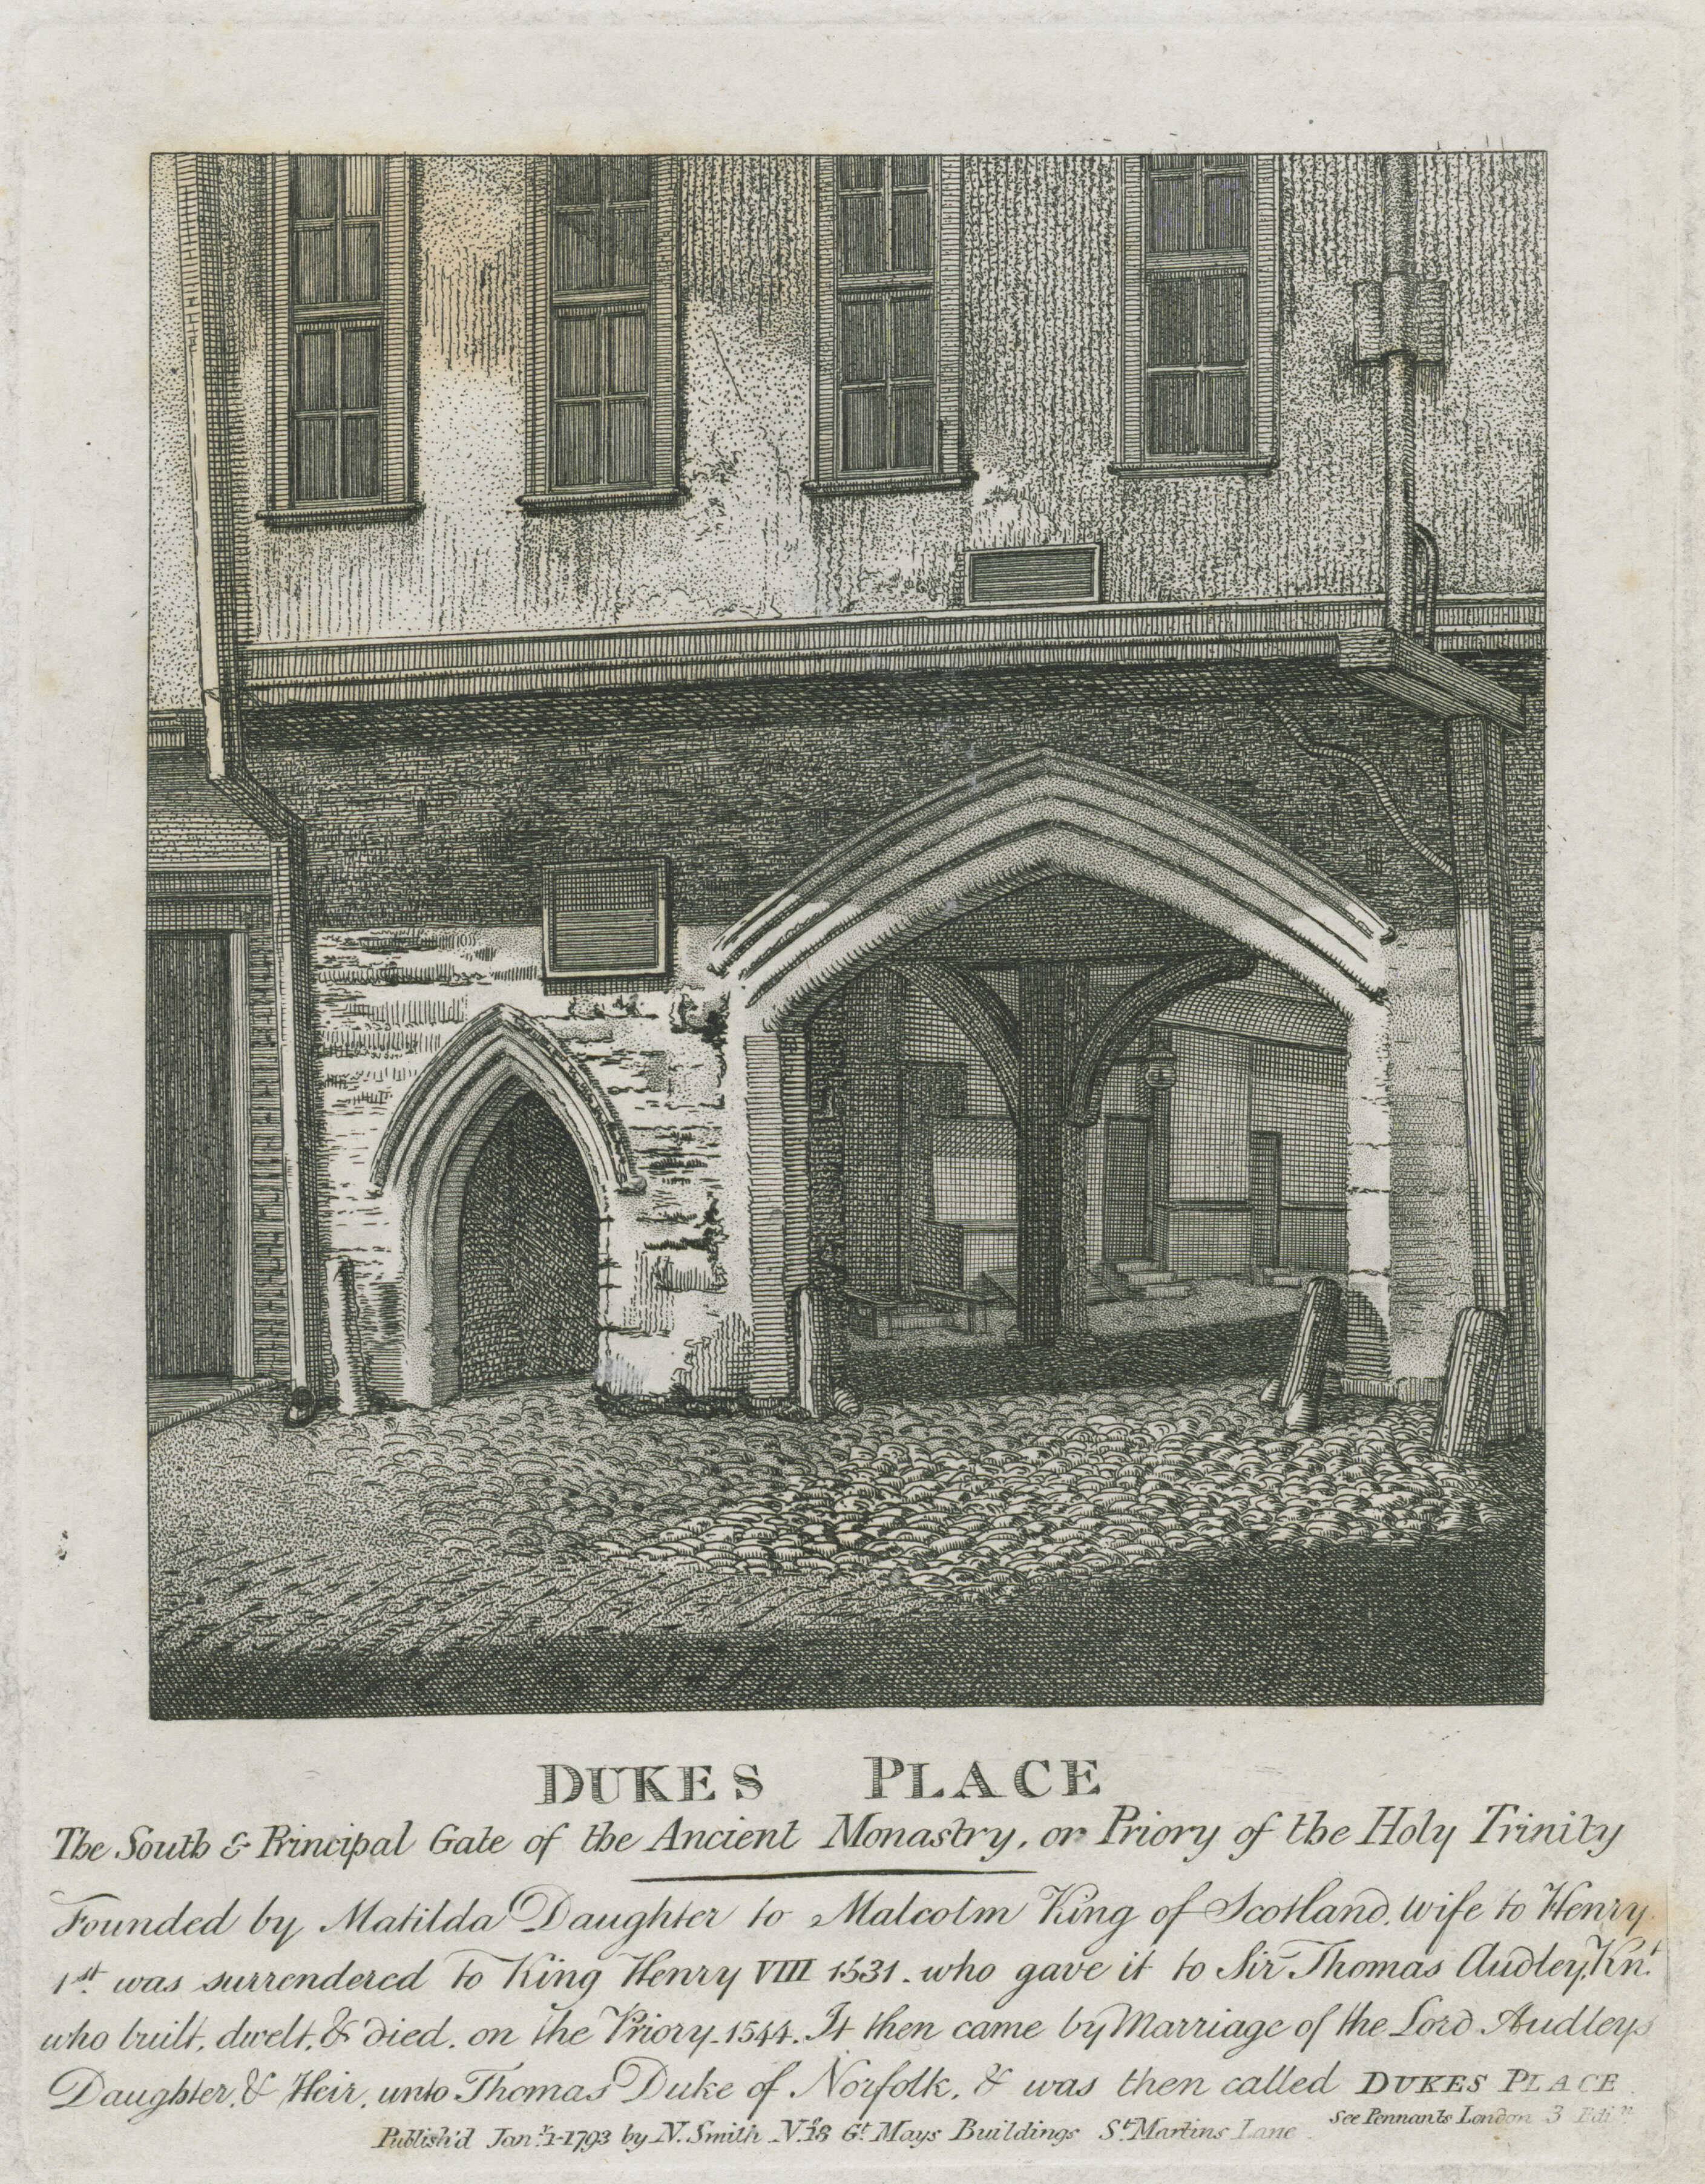 35-dukes-place-the-south-principal-gate-of-the-ancient-monastry-or-priory-of-the-holy-trinity